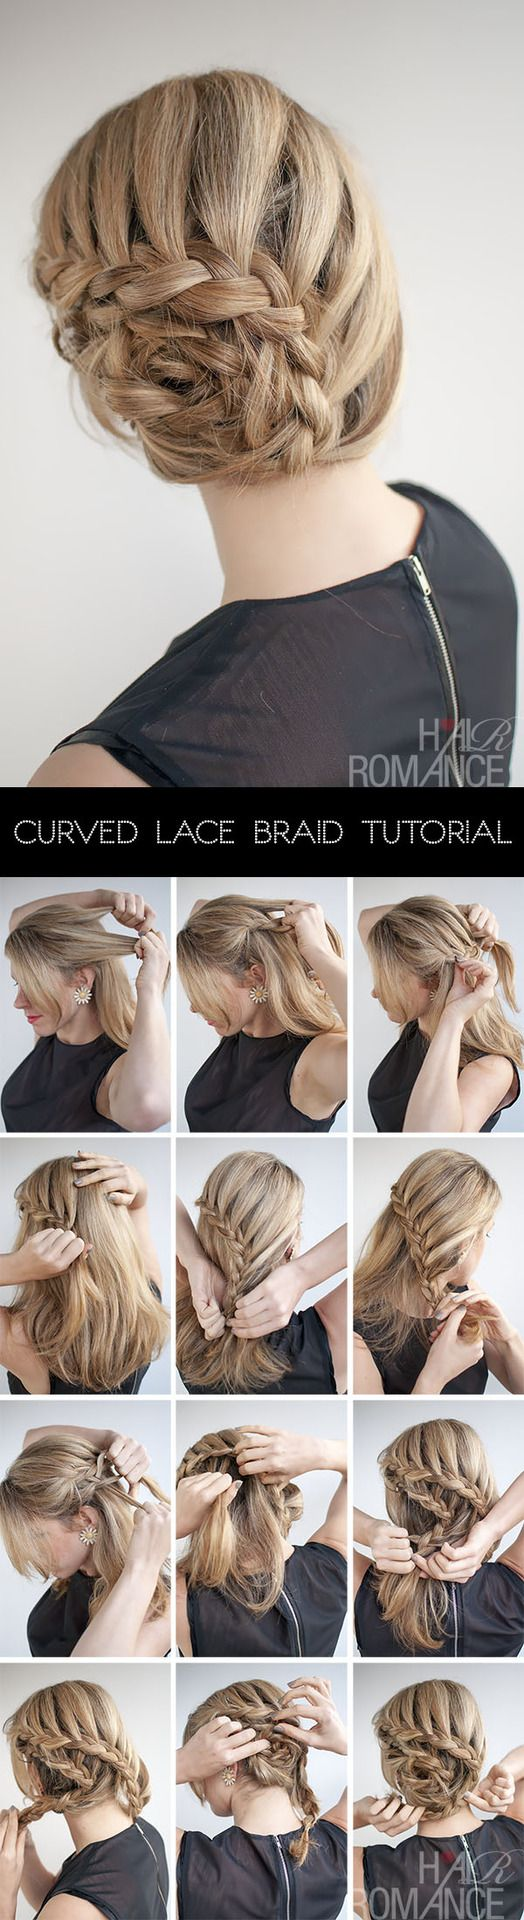 25 beautiful updo hairstyles tutorials ideas on pinterest easy hair romance curved lace braid updo hairstyle tutorial hair hairstyles pmusecretfo Images